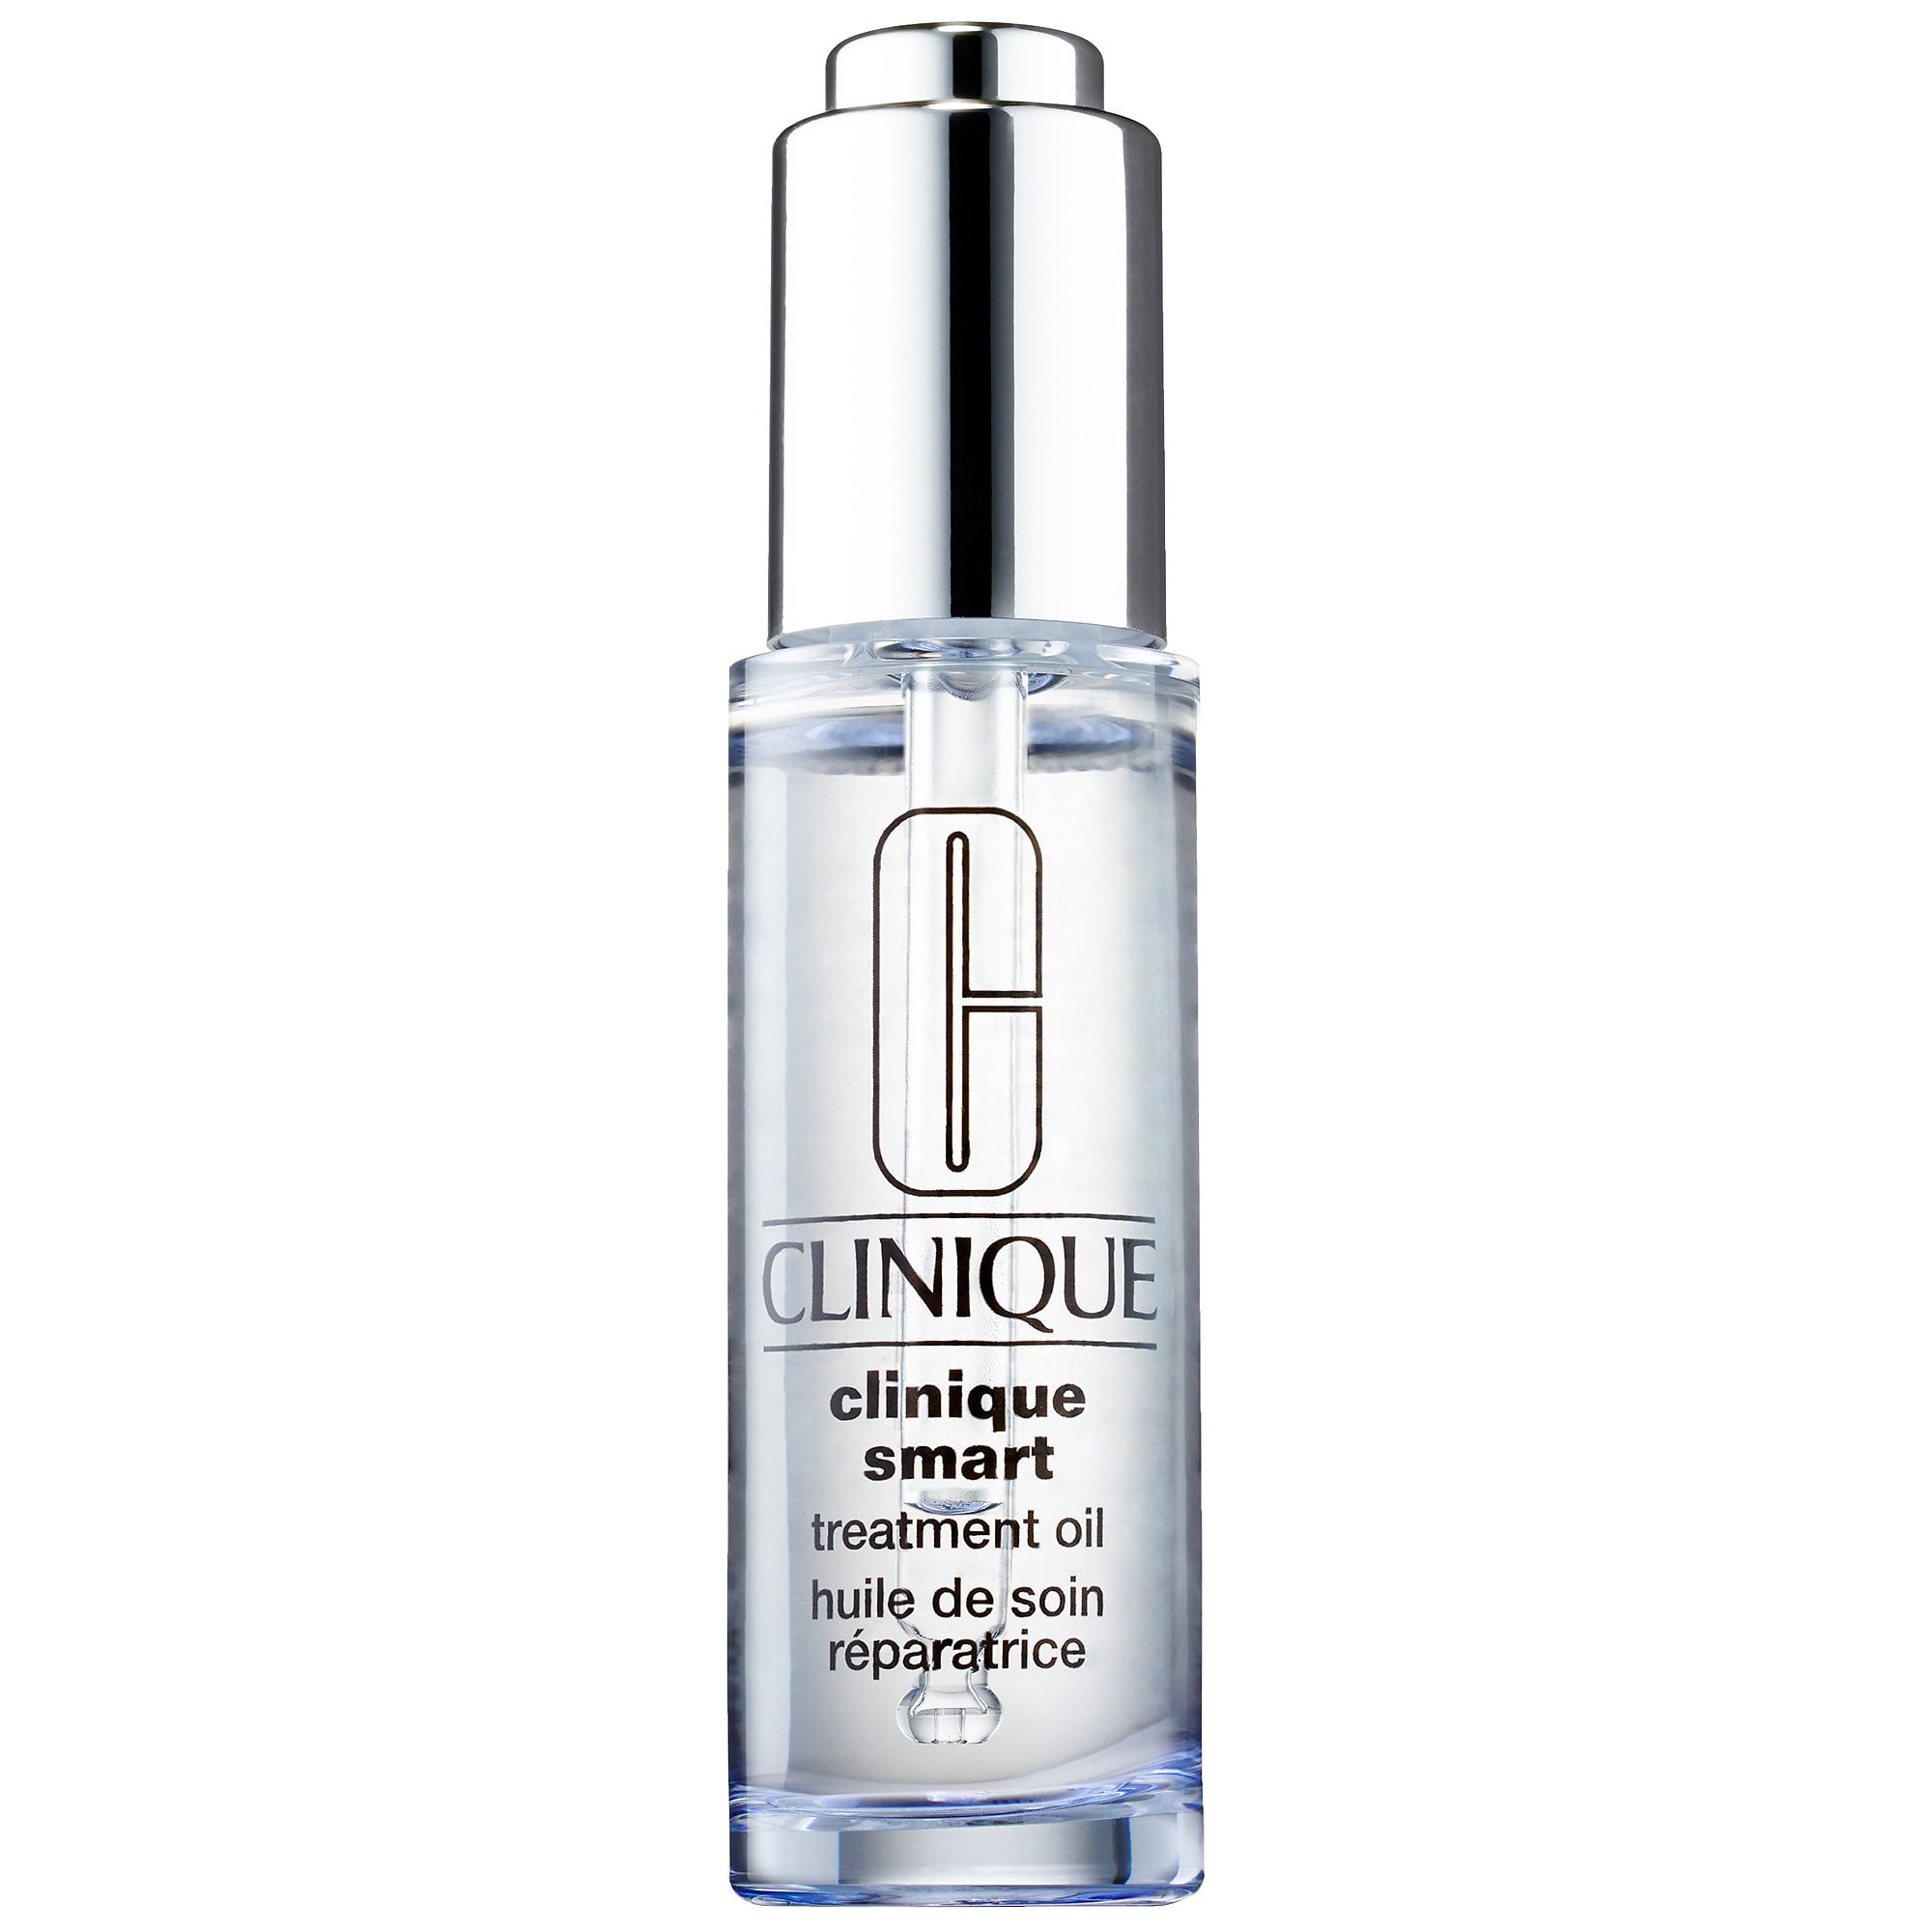 clinique smart treatment oil 75 new beauty products you need to snag this spring popsugar beauty. Black Bedroom Furniture Sets. Home Design Ideas